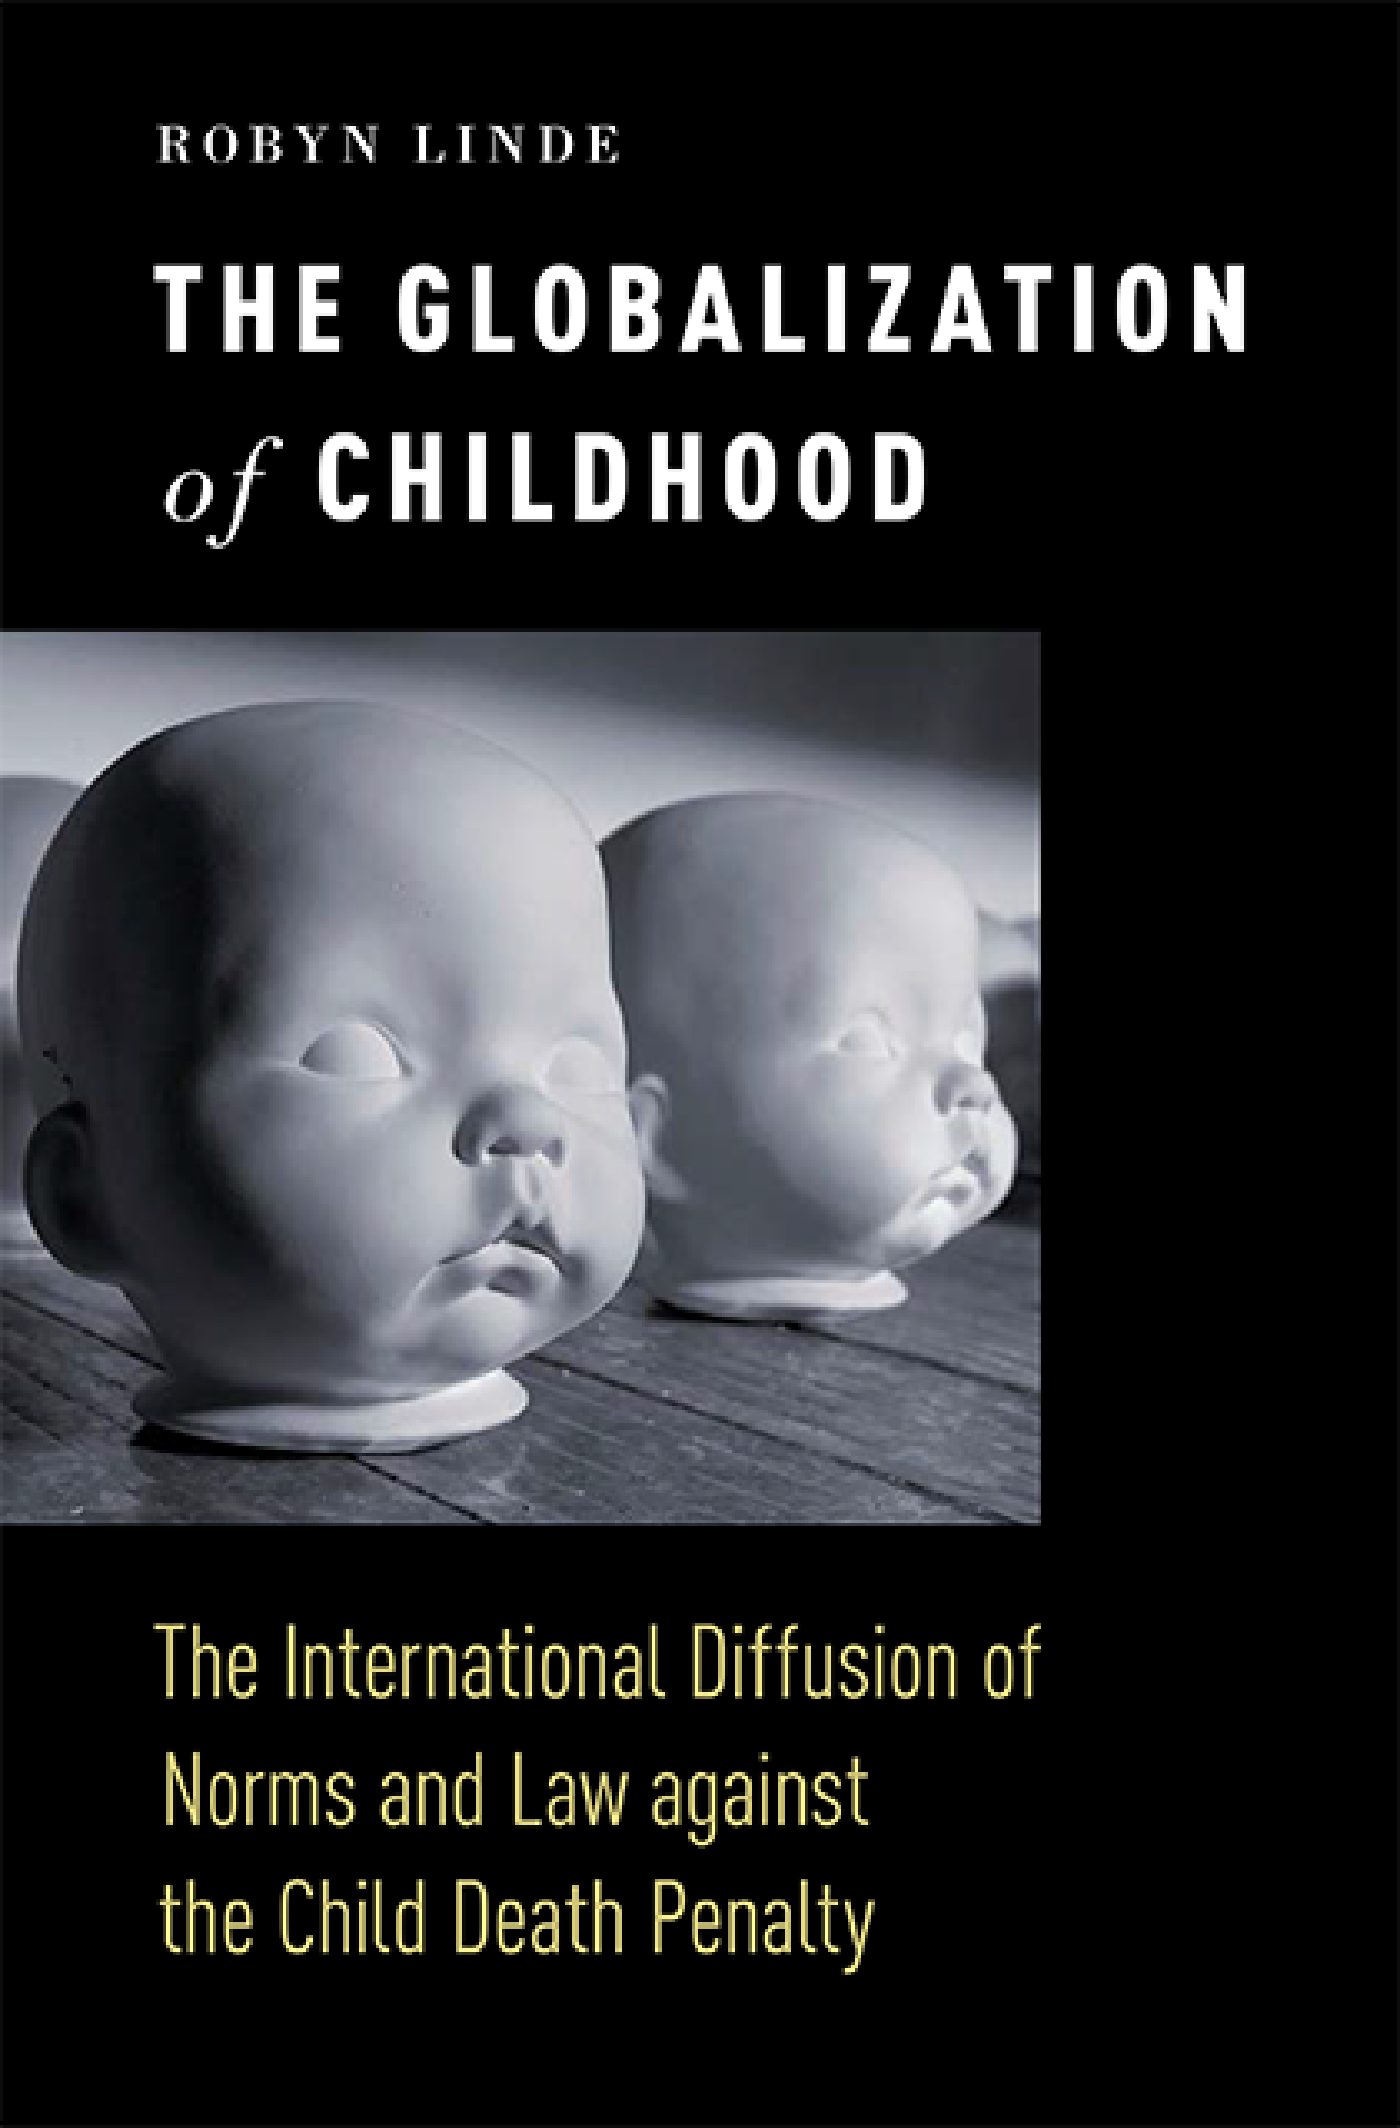 cover of the book The Globalization of Childhood, by Robyn Linde